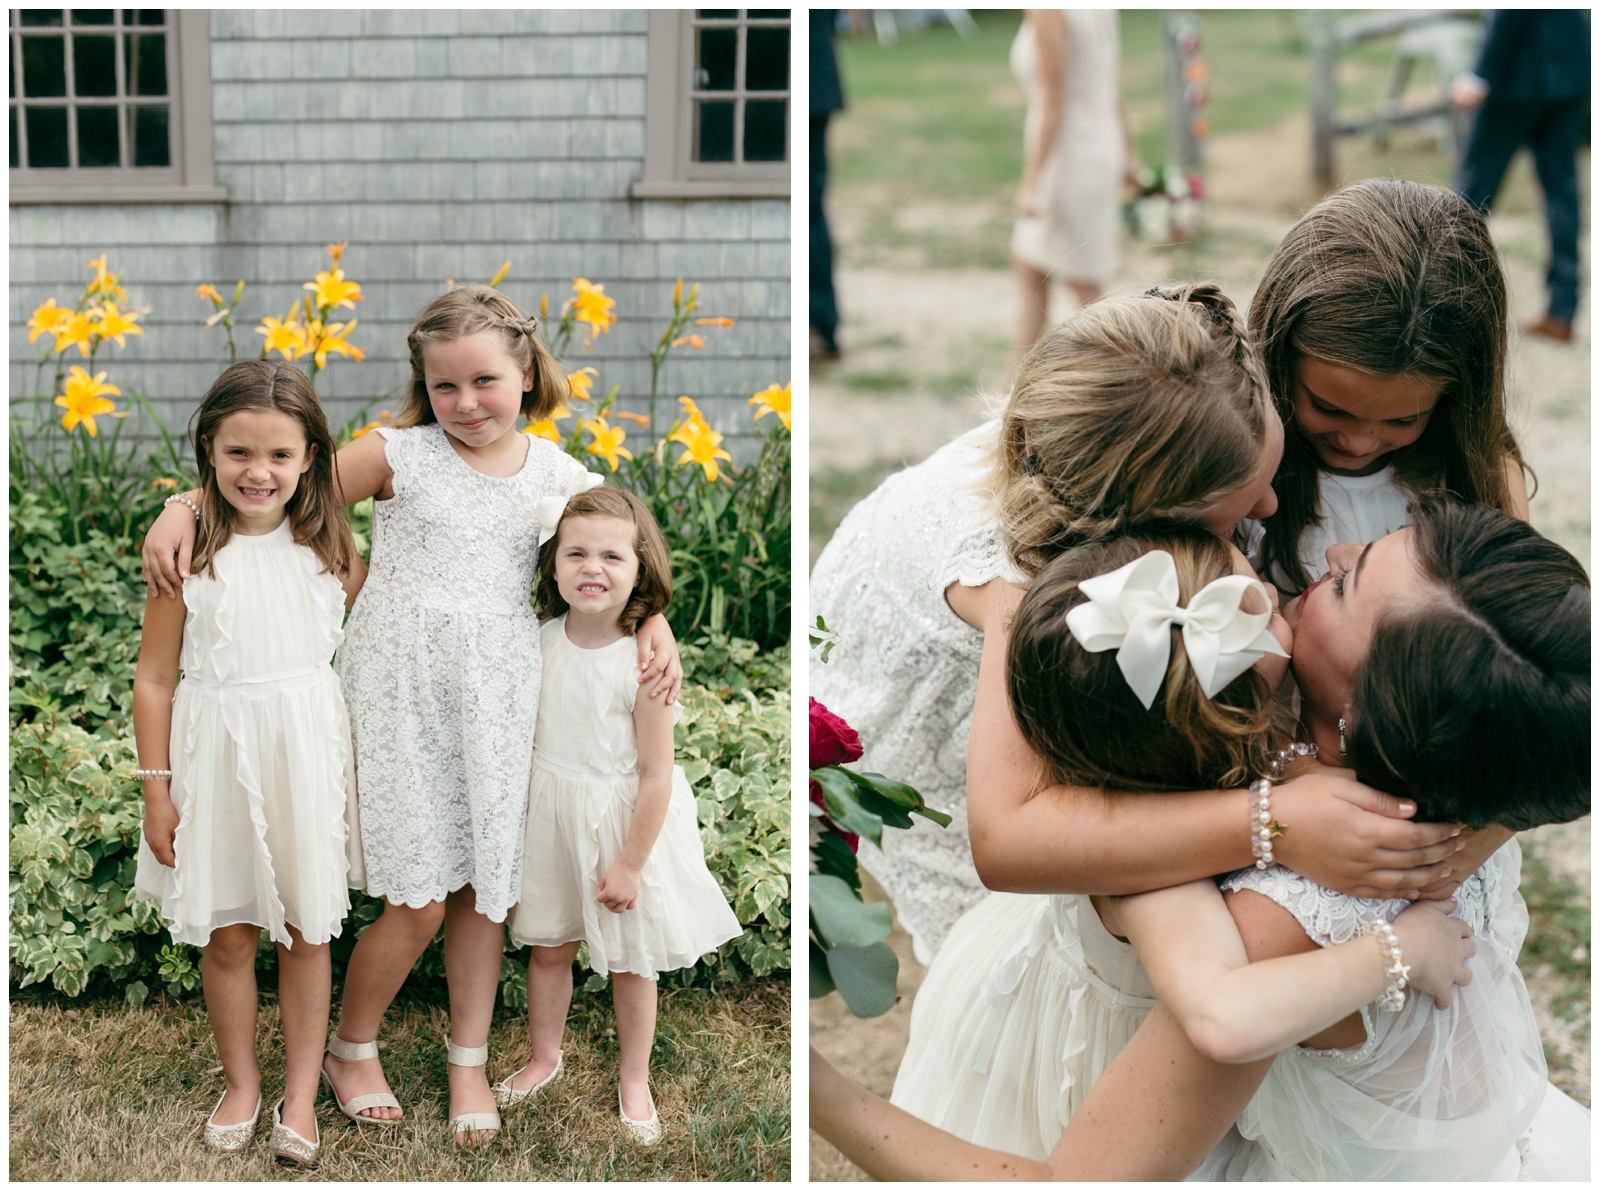 Bourne-Farm-Wedding-Cape-Cod-wedding-photographer-Bailey-Q-Photo-025.jpg